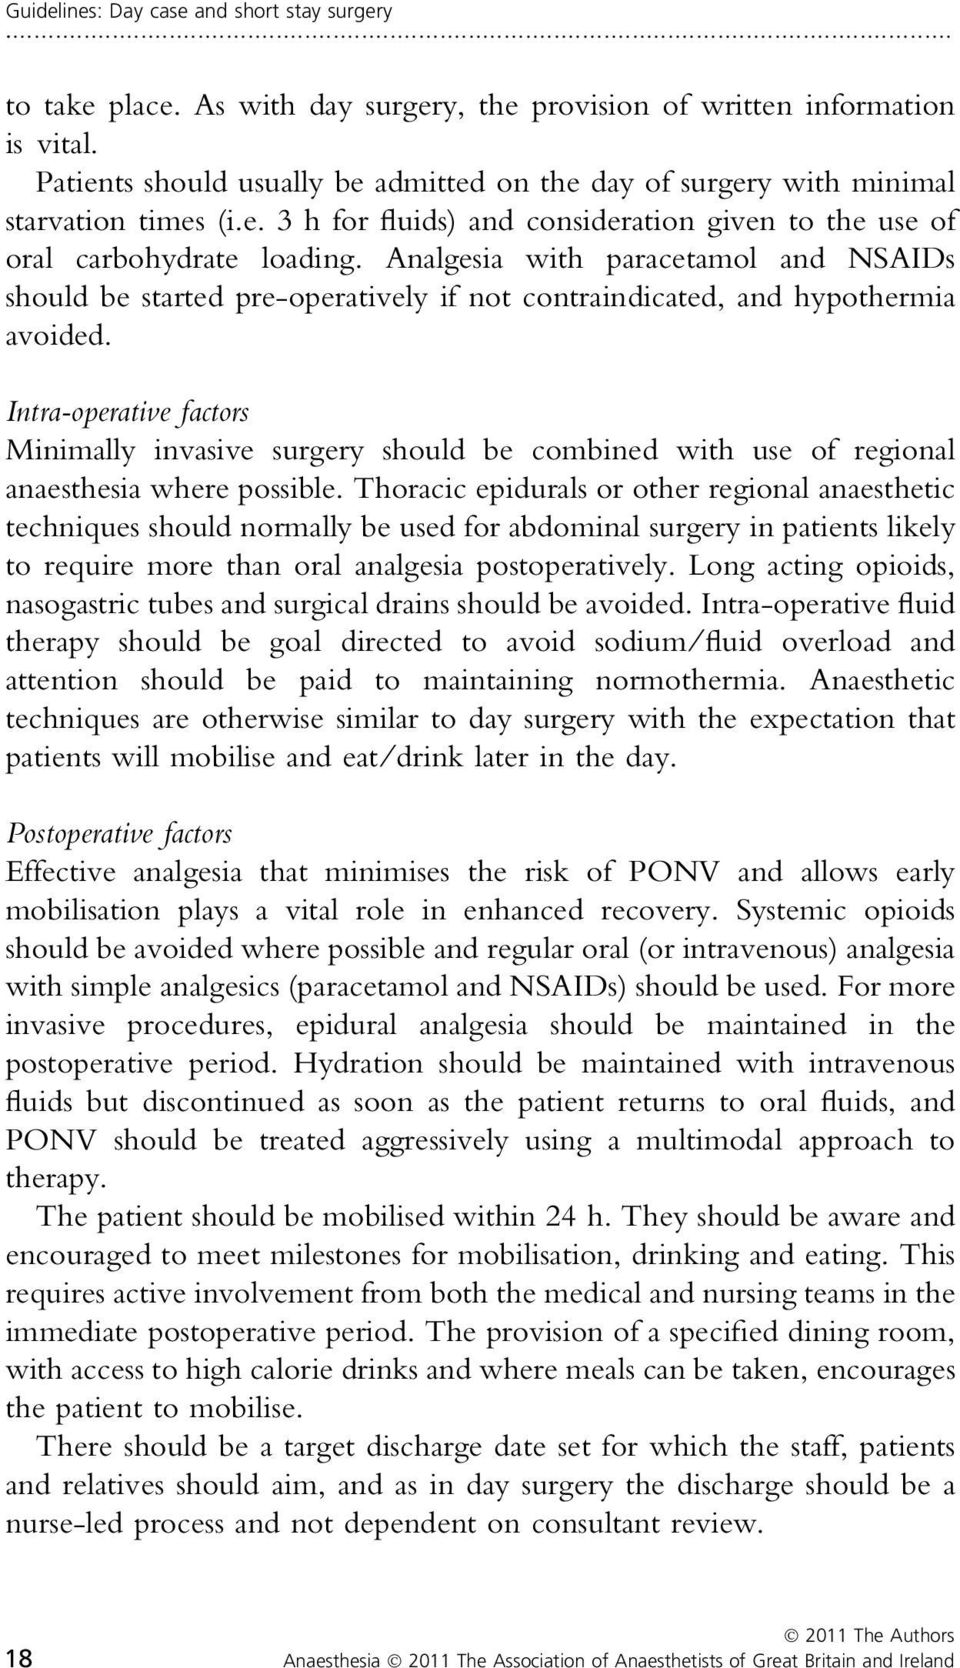 Intra-operative factors Minimally invasive surgery should be combined with use of regional anaesthesia where possible.